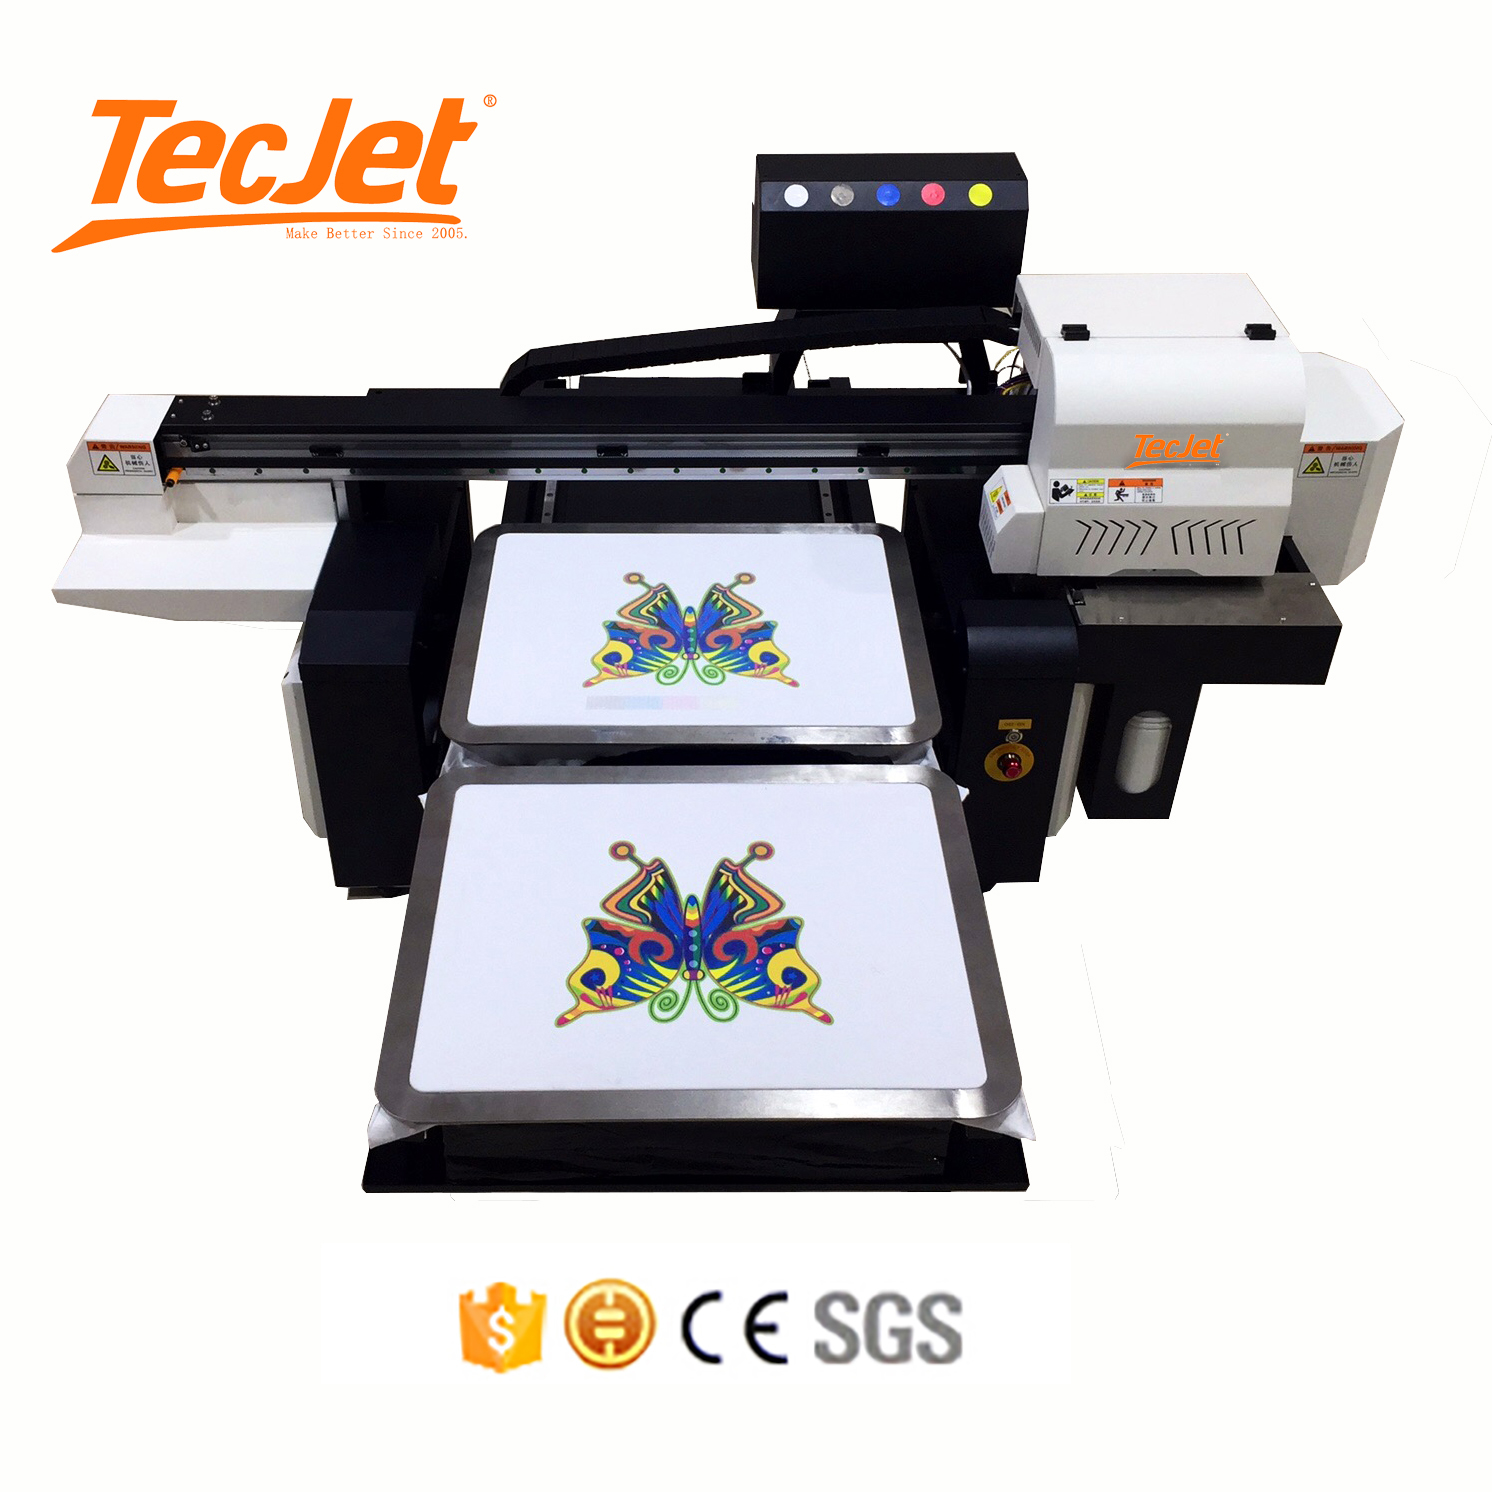 TECJET 6090 DTG drucker 600*900mm Digital Direct To Garment T-shirt drucker diy t shirt logo druck maschine